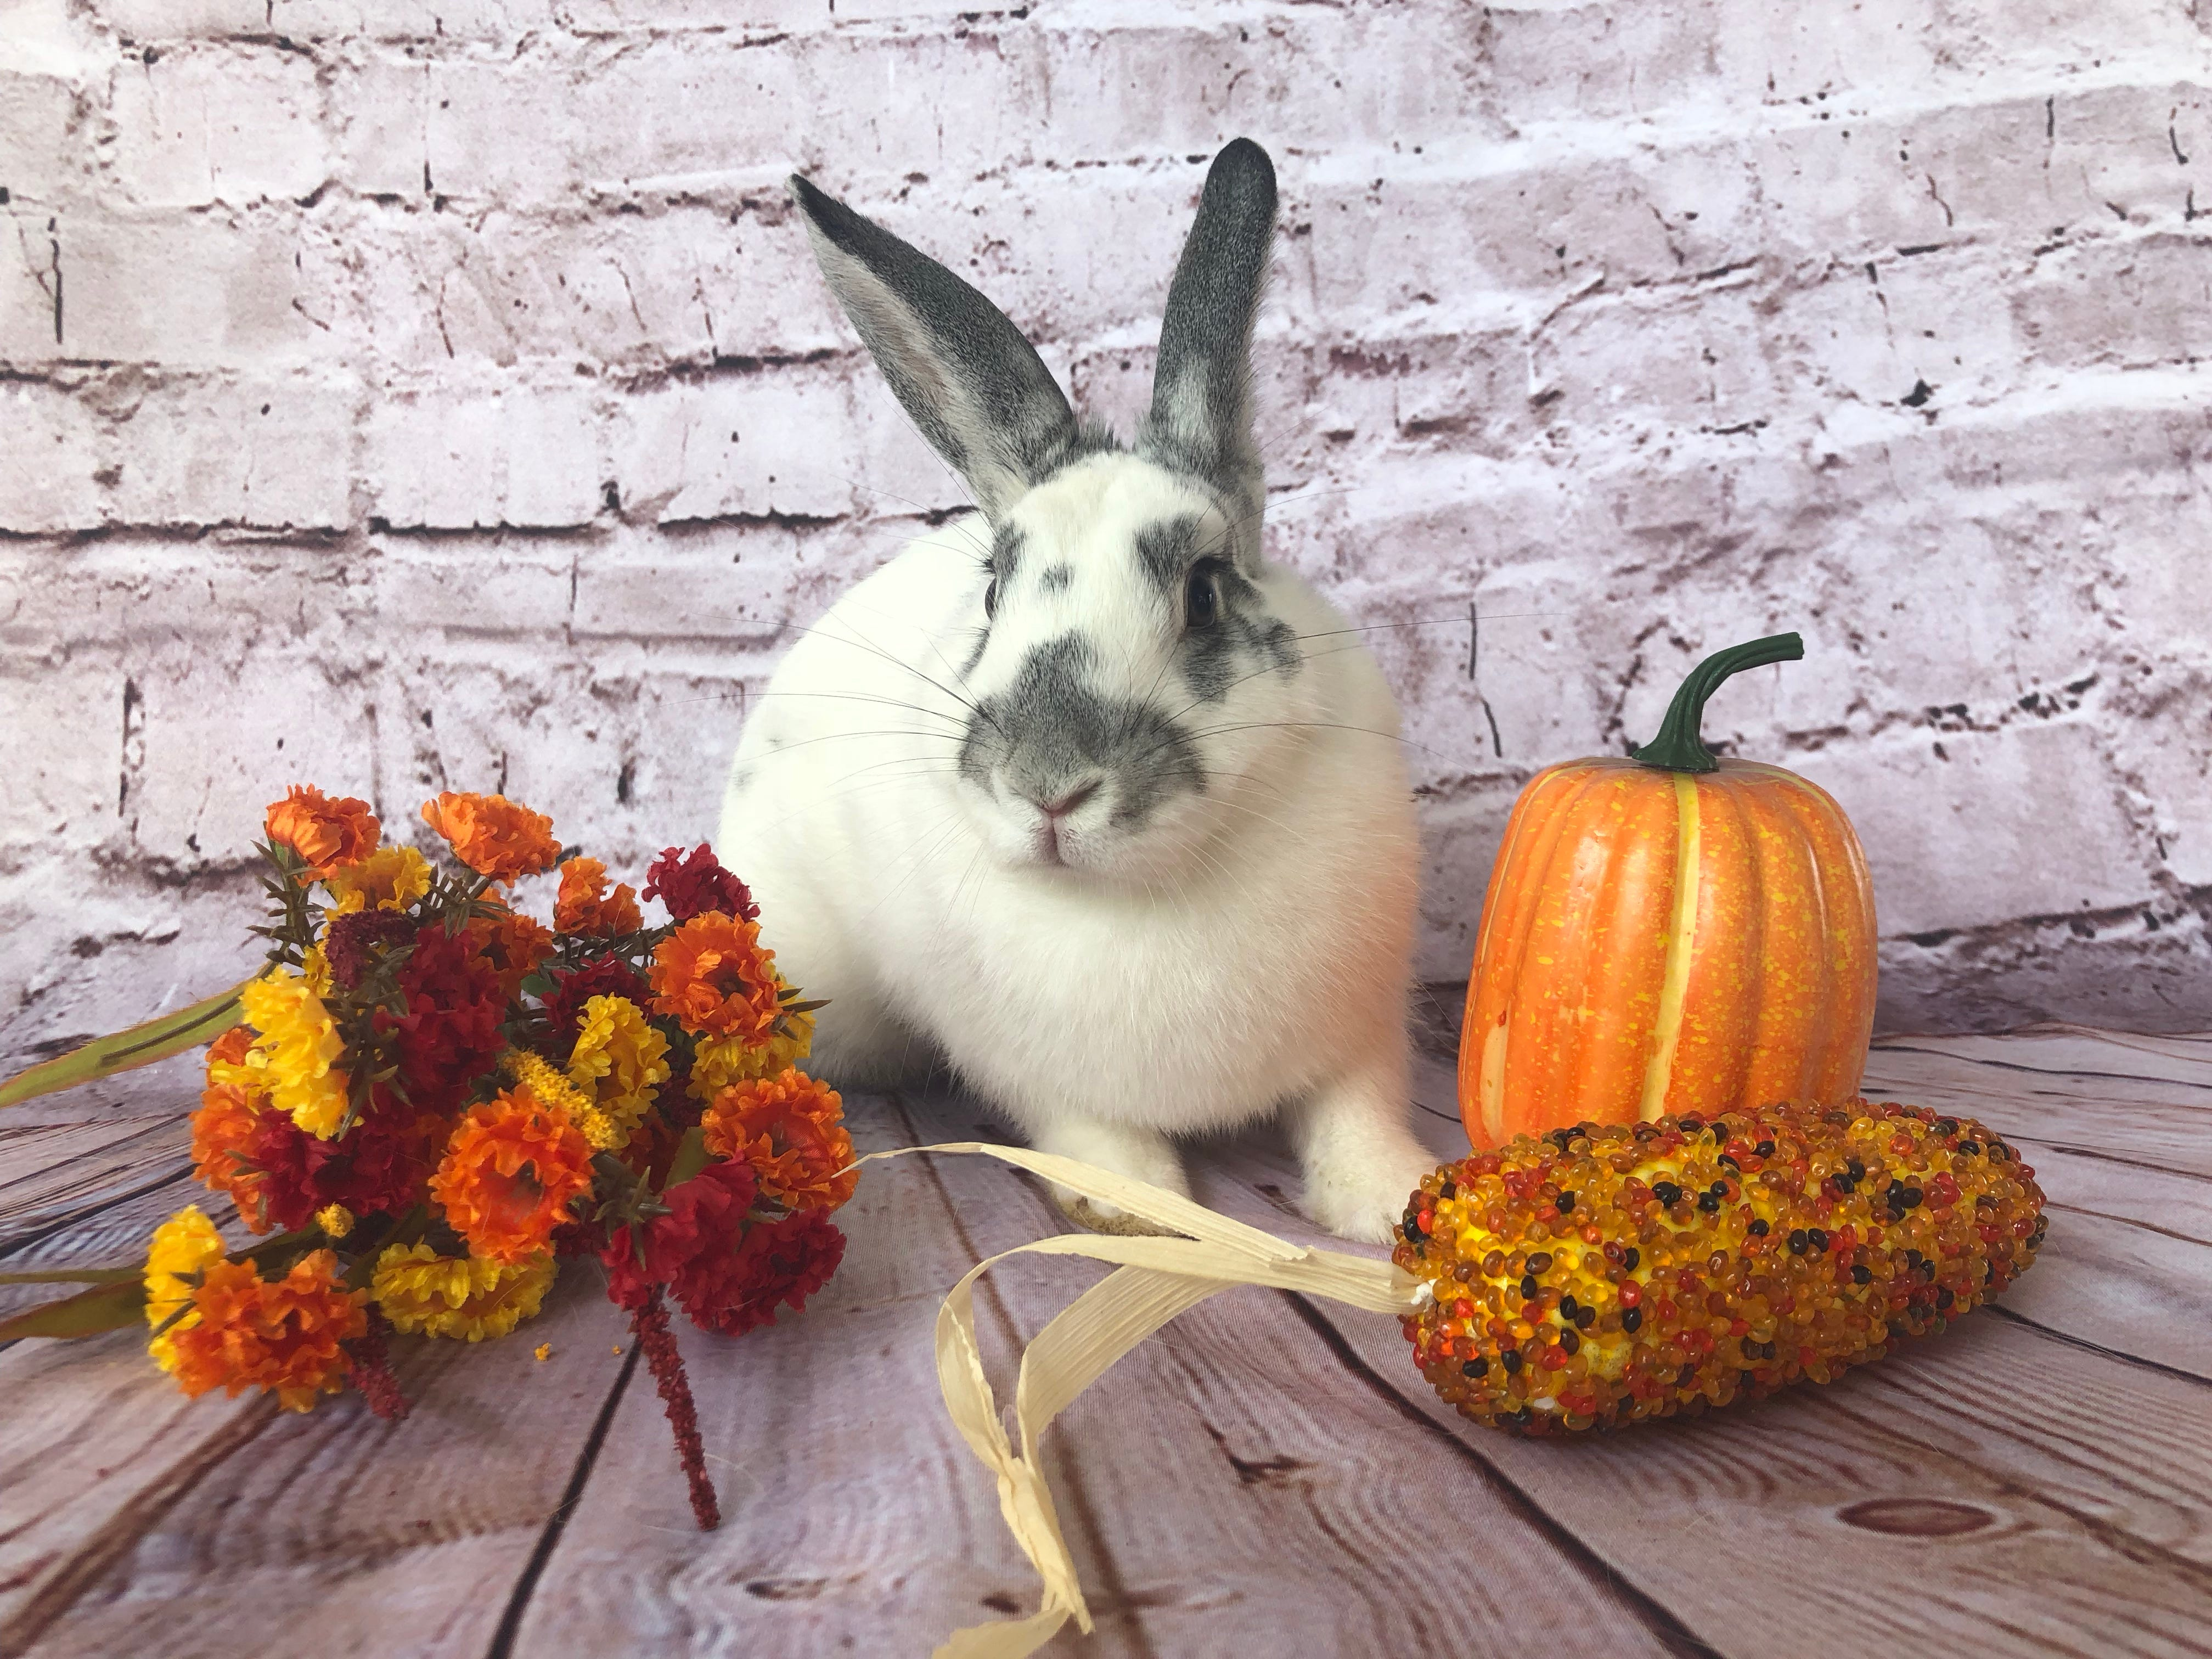 "Adoptable Cosette and her fellow shelter rabbits are feeling extra grateful this Thanksgiving. They have been joined by several ""safe haven"" bunnies who are being cared for by the Ventura County Animal Services Bunny Brigade while their families remain displaced by area fires. While firefighters have come from around the country to help make the local community safe again, Ventura County Animal Services has worked around the clock to provide shelter and loving care to dozens of pets of all shapes and sizes until their families can reclaim them. Meanwhile, Cosette is one of more than 70 rabbits who are still awaiting their forever homes. She herself is a Ventura County Animal Services success story, having received life-changing surgery that partially amputated a severely injured leg while enabling her to continue to hop, play and live a happy and healthy life. To meet this friendly and curious girl, visit the county shelter at 600 Aviation Drive in Camarillo and ask for ID A691407. For details about adoption hours, offsite events, bunny nail trims and compatibility dates, visit facebook.com/VCASBunnyBrigade. For more information on other animals, visit www.vcas.us."